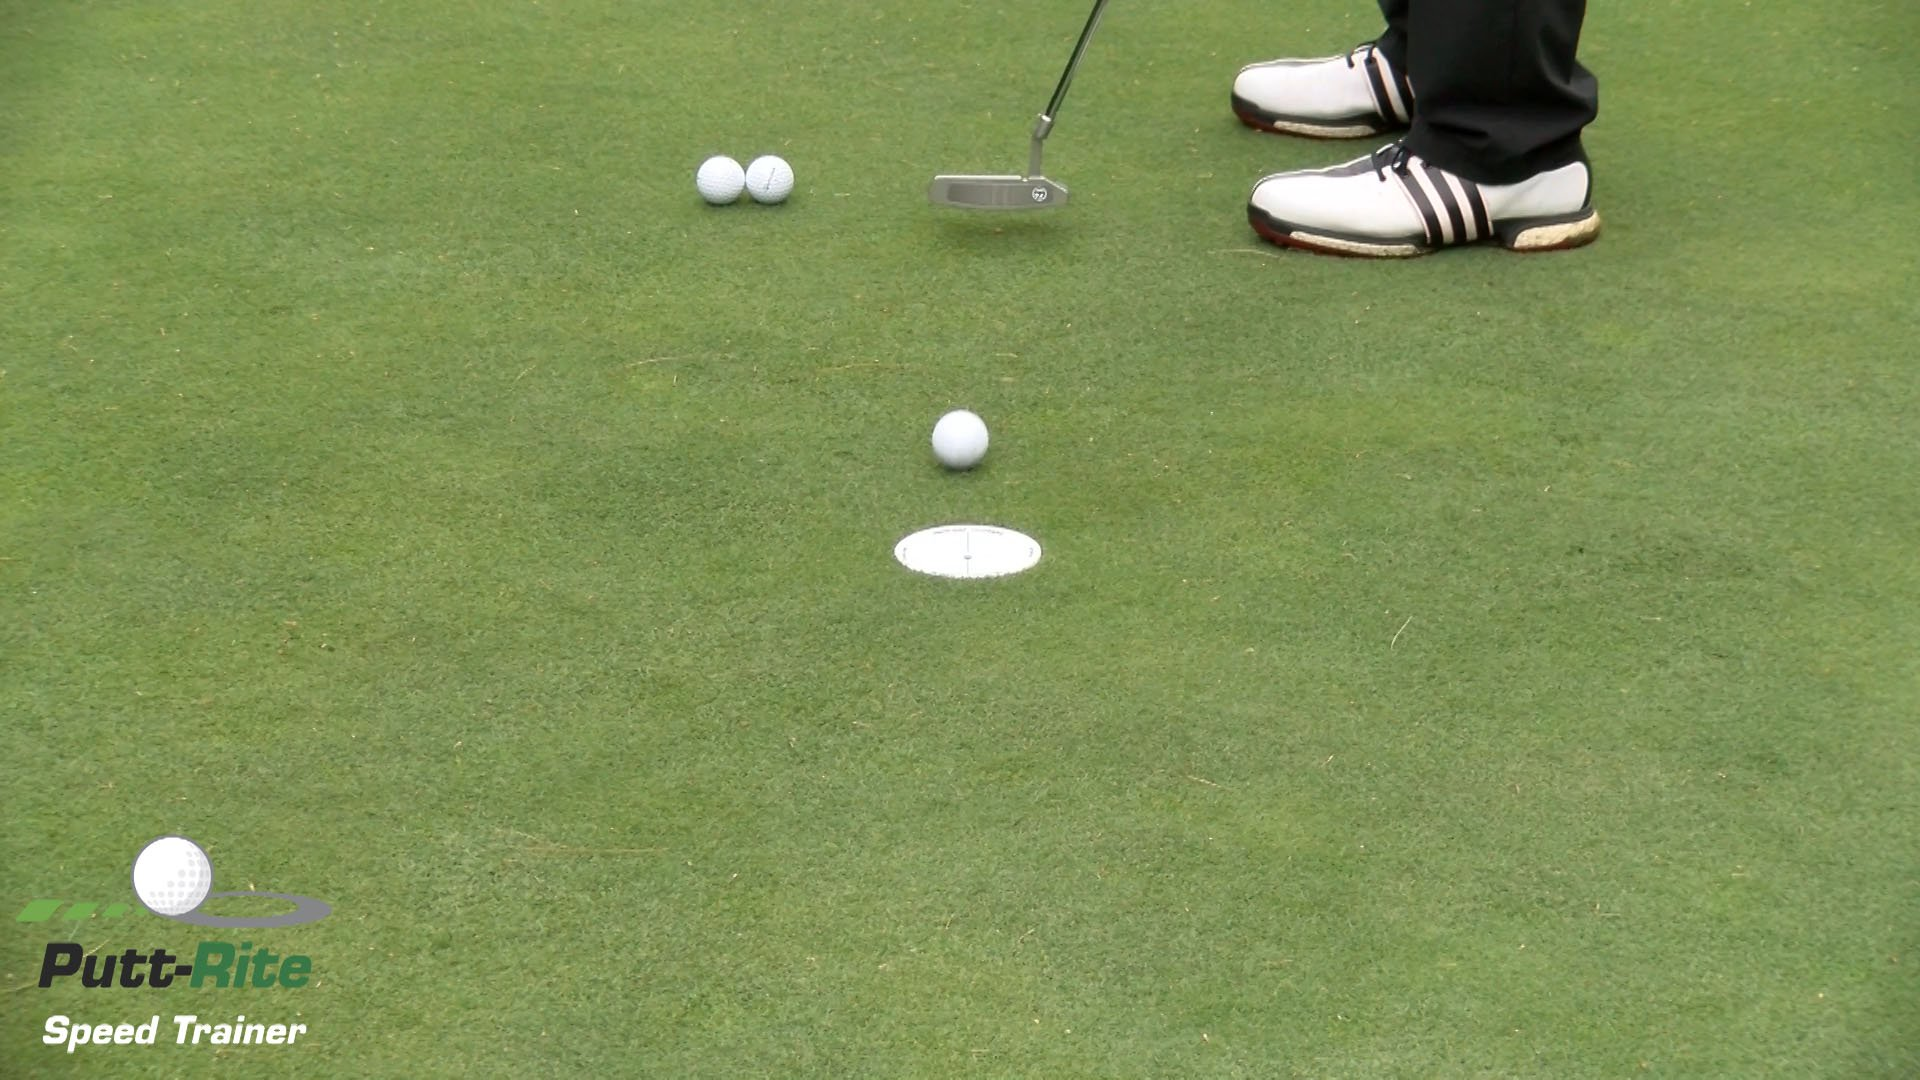 Putt-Rite Speed Trainer - Putting Training Aid to Perfect Putting Speed by Putt-Rite (Image #8)